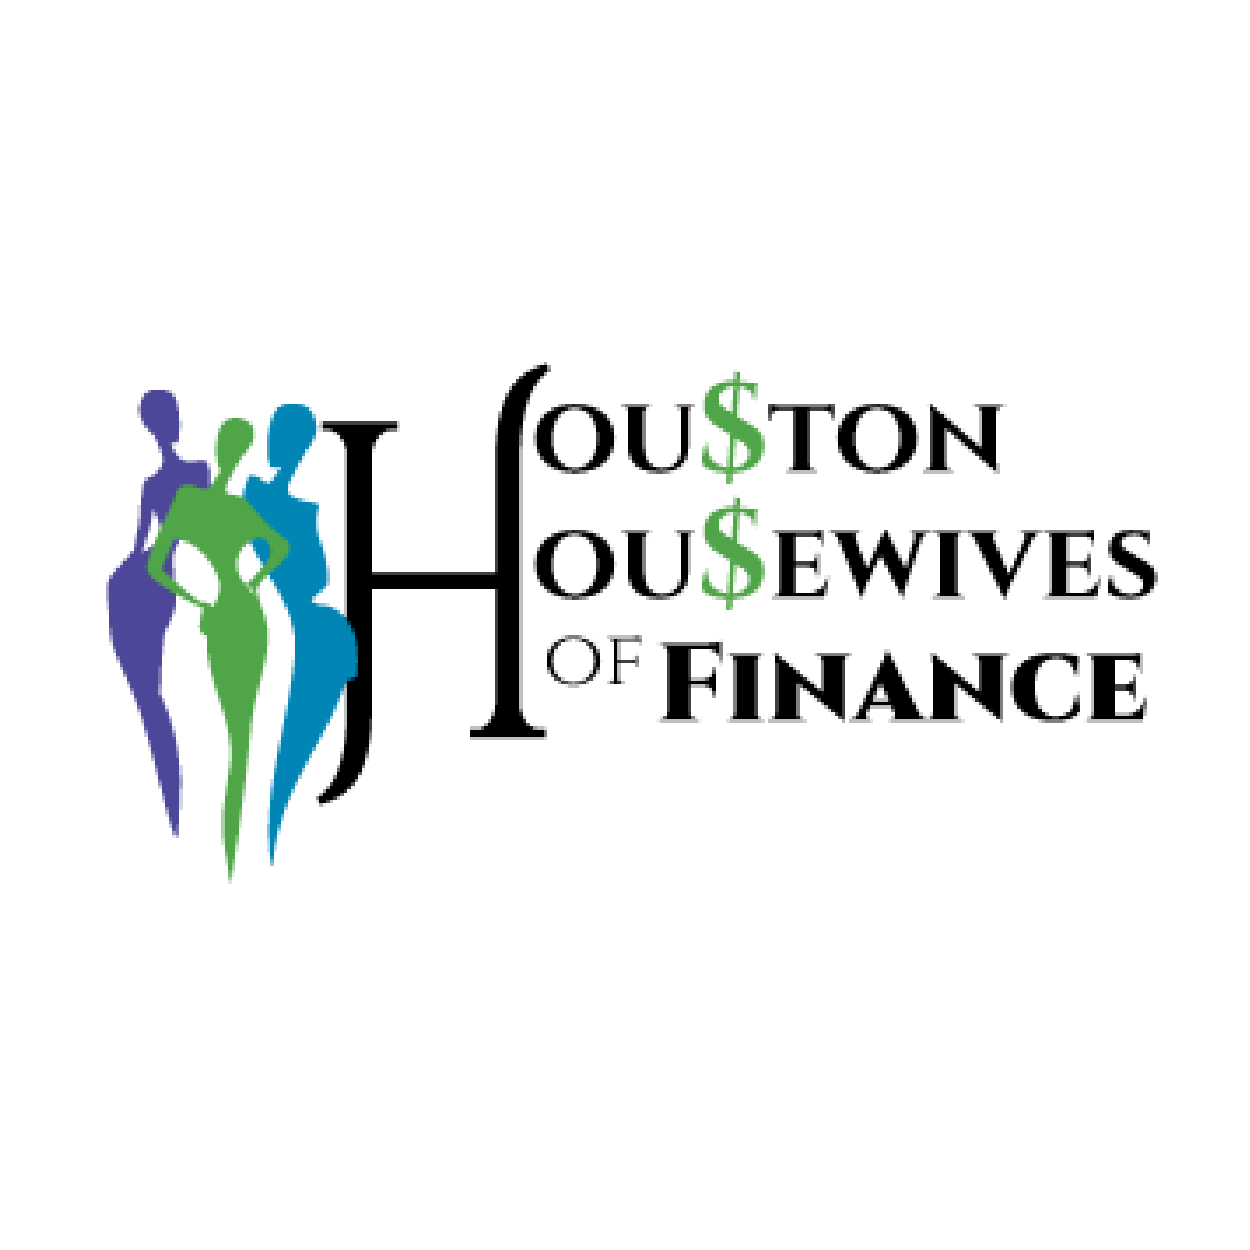 Houston Housewives of Finance